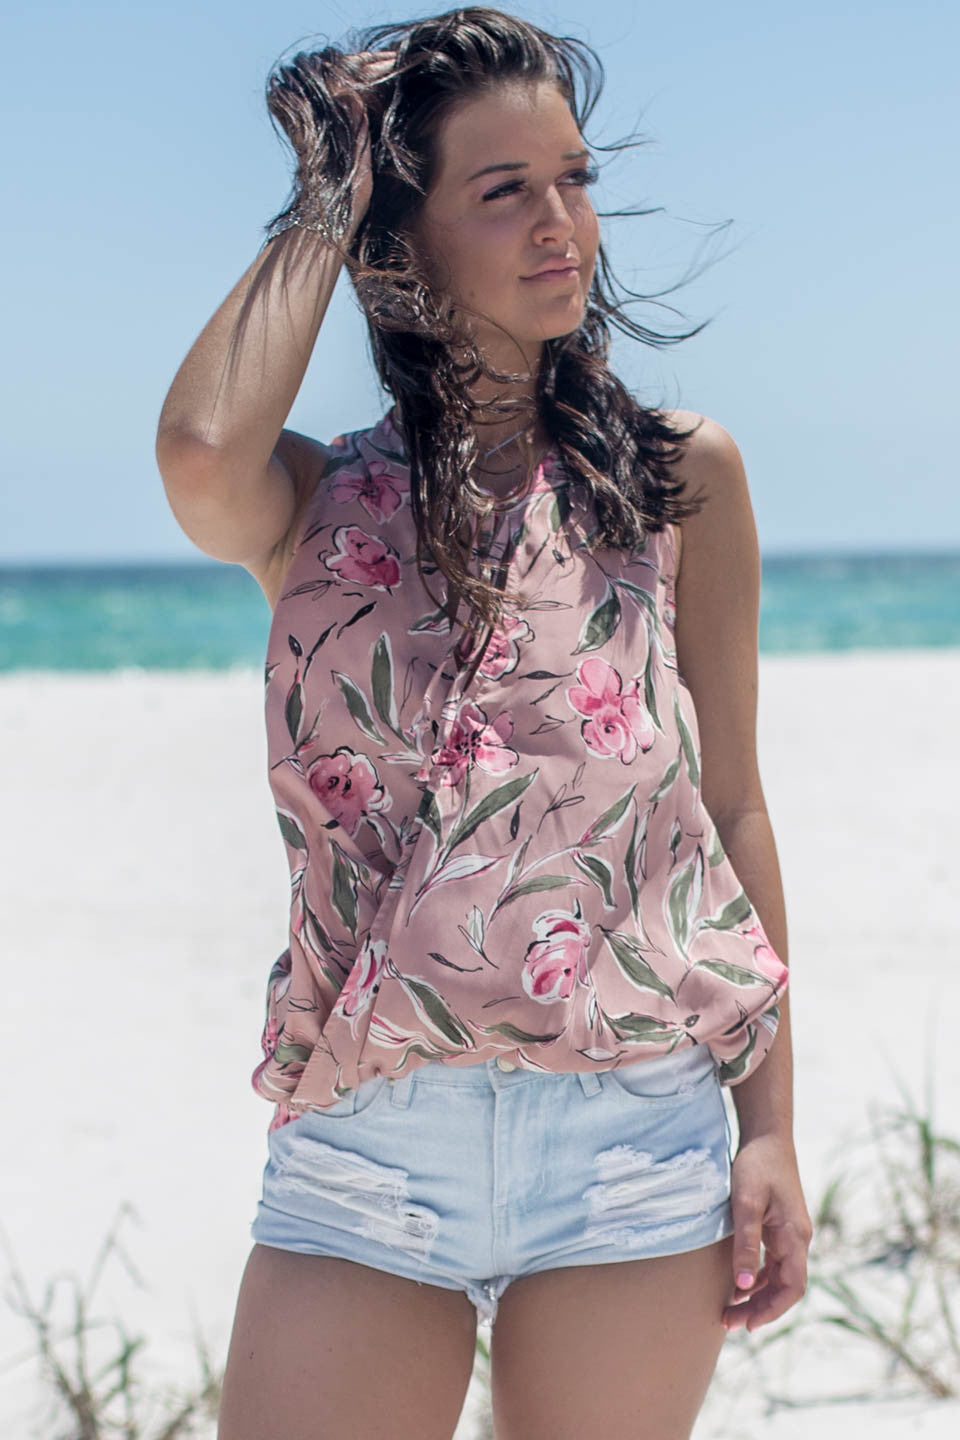 Forget Me Not Sleeveless Flower Print Top - Amazing Lace